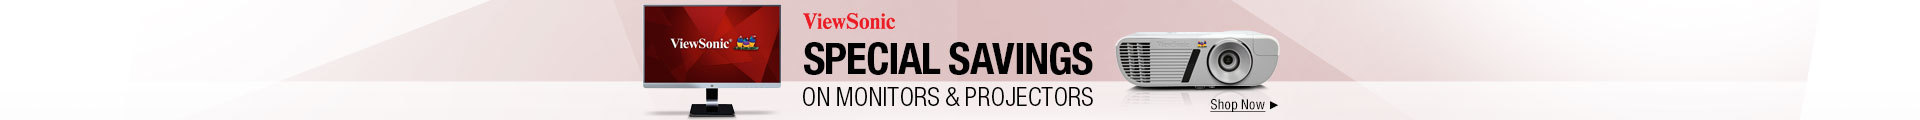 Special savings on monitors & projectors